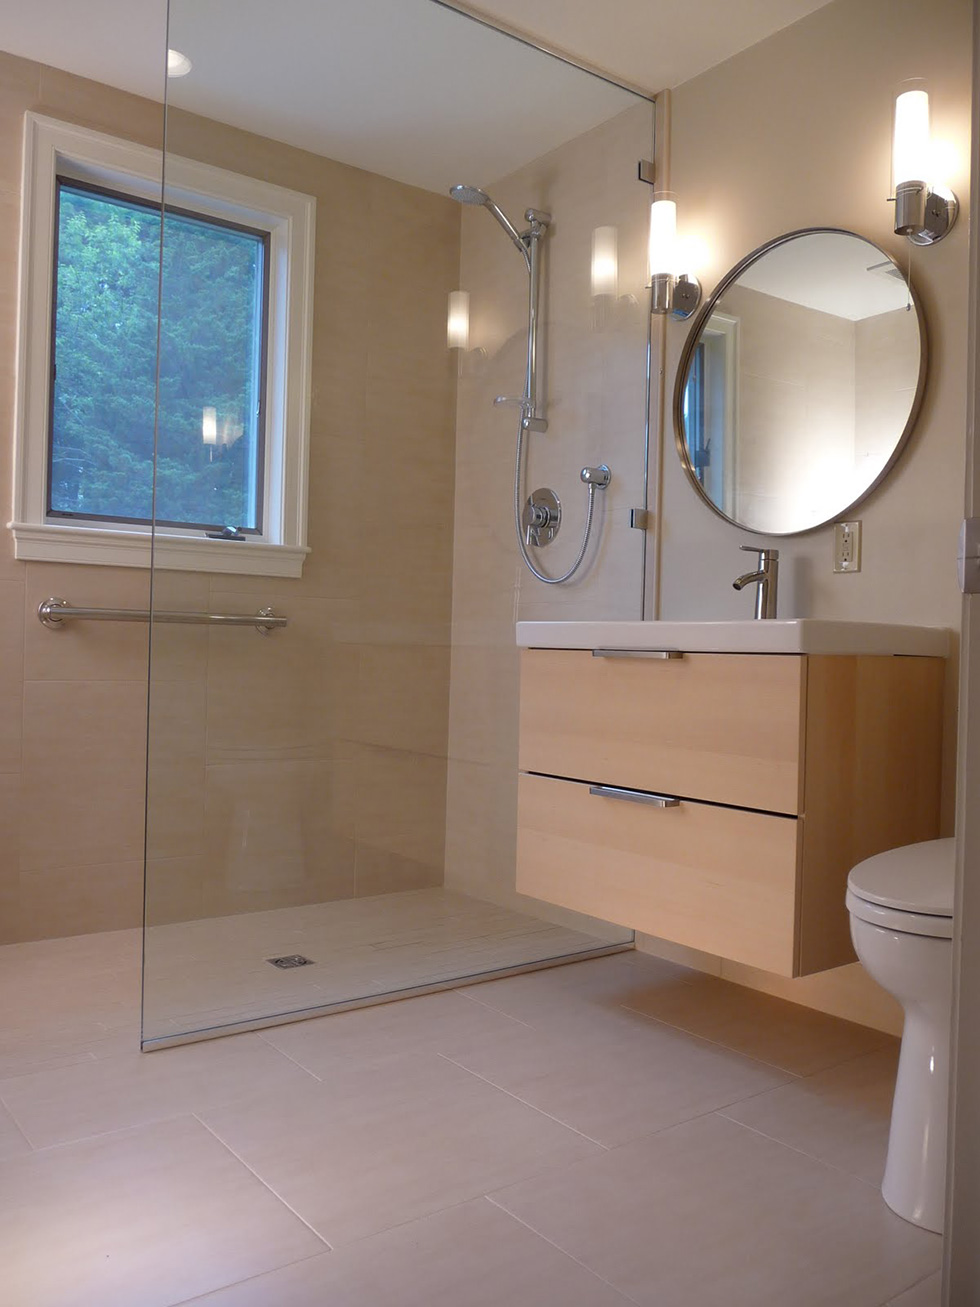 Bathroom ideas bathroom remodel ideas houselogic bathrooms for Remodeling ideas for bathrooms